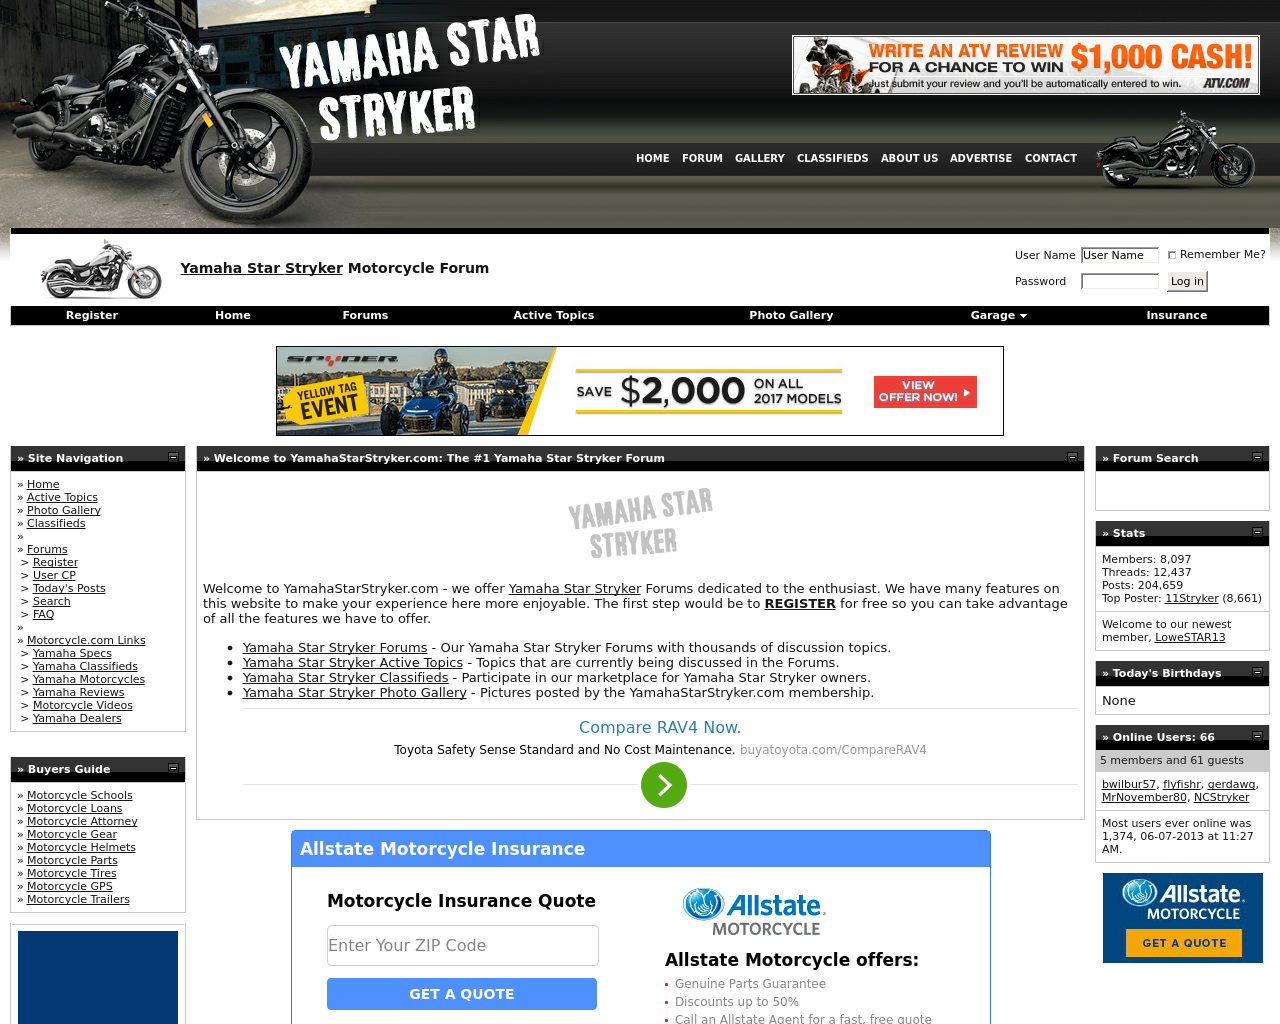 Yamaha-Star-Stryker-Motorcycle-Forum-Advertising-Reviews-Pricing